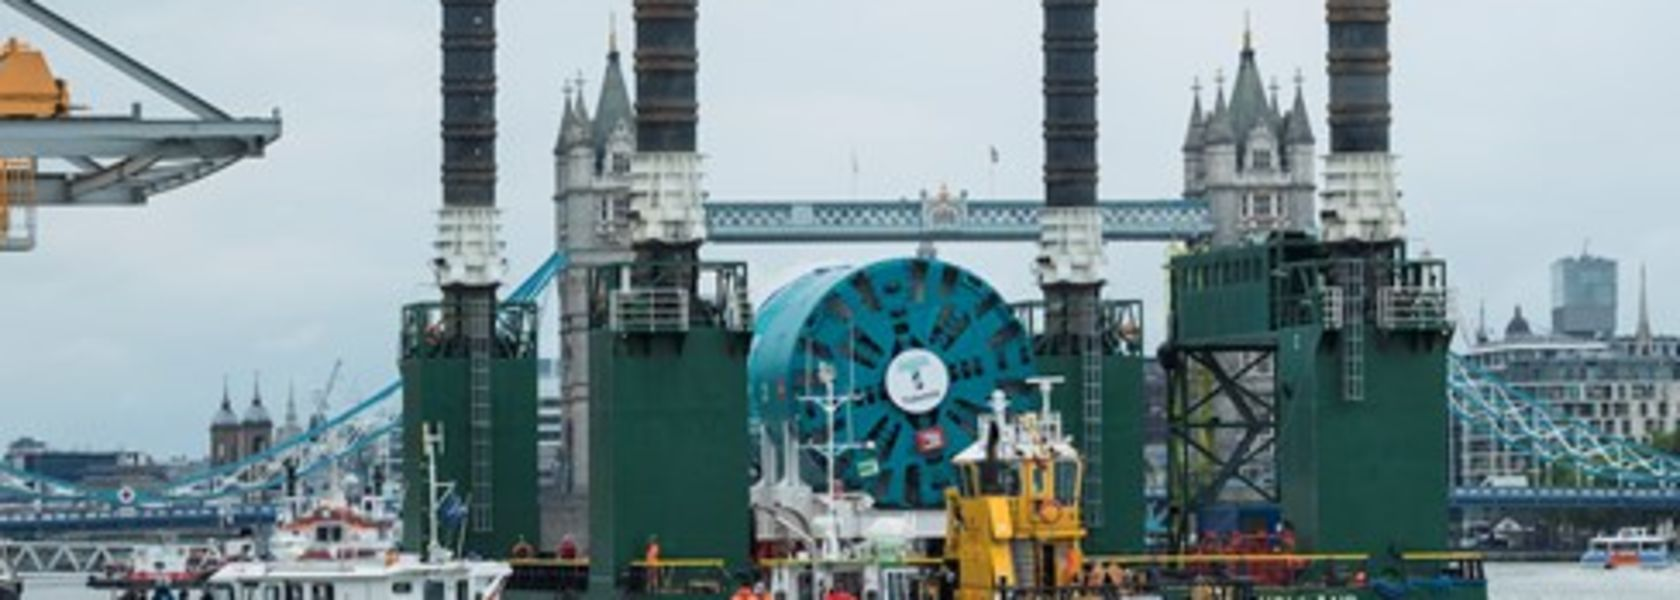 London super sewer TBM arrives by river